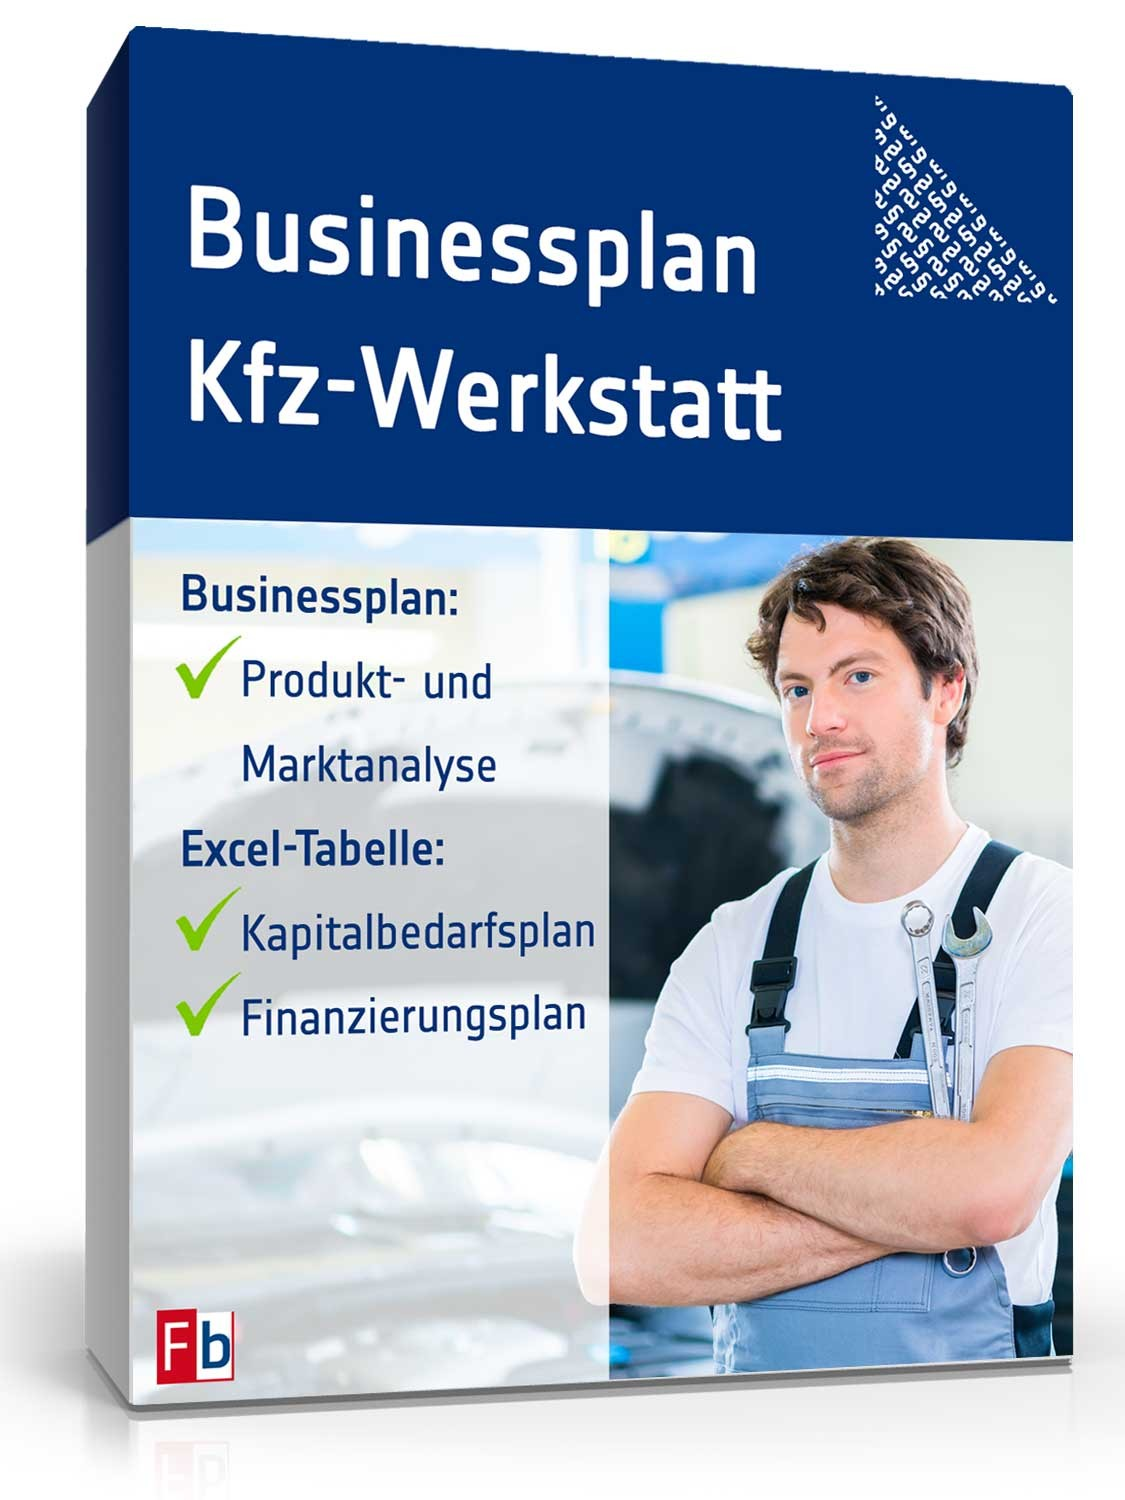 businessplan kfz werkstatt muster aus profihand downloaden. Black Bedroom Furniture Sets. Home Design Ideas